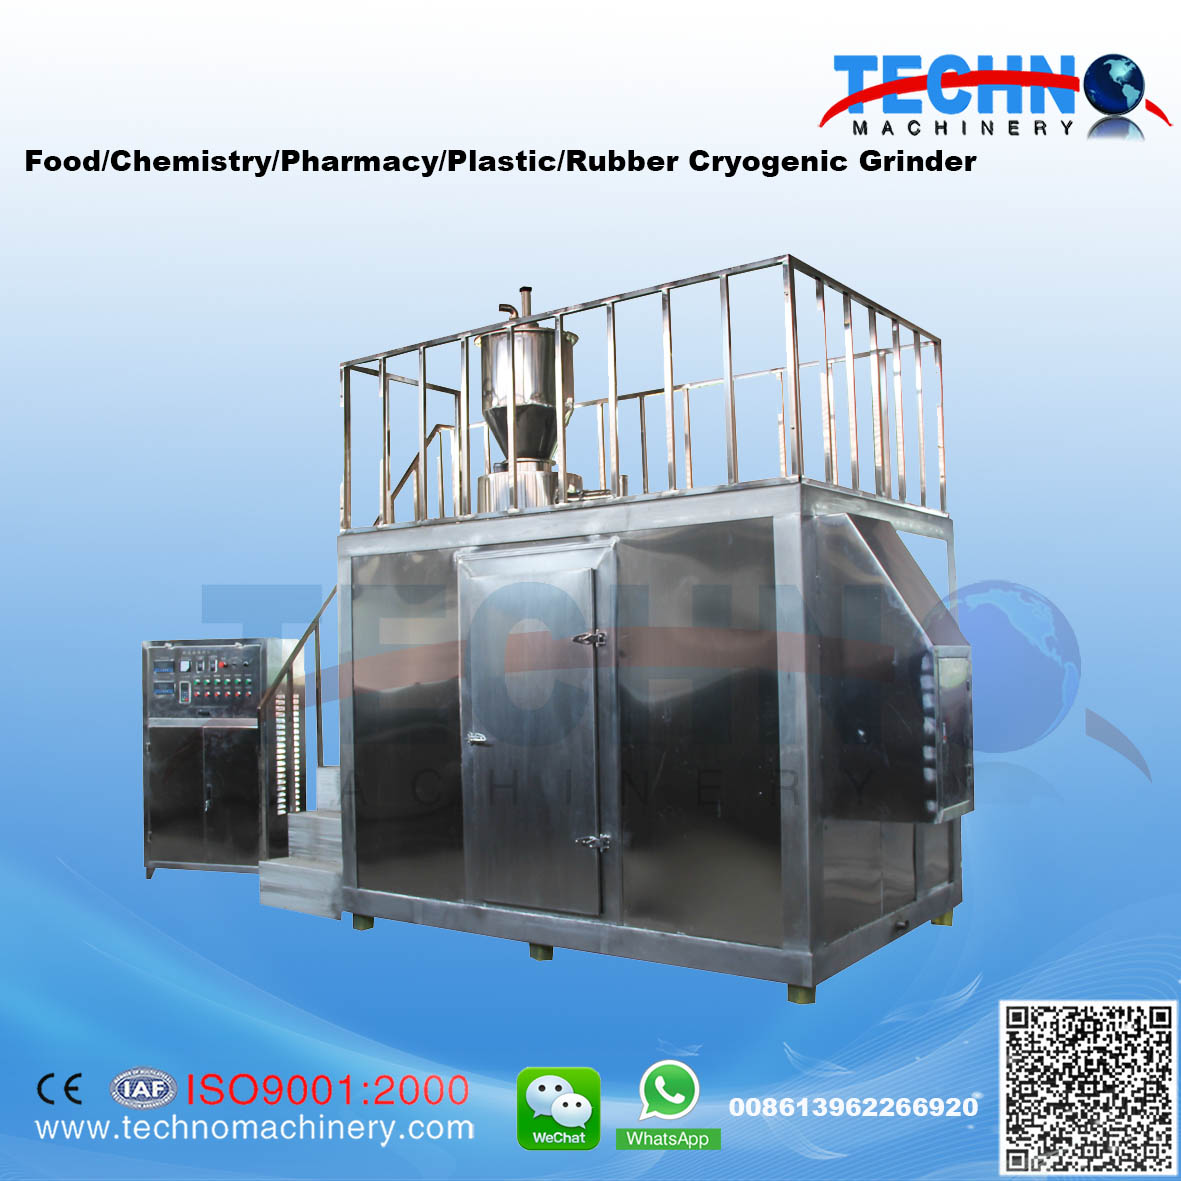 Turnkey Service Cryogenic Grinding System